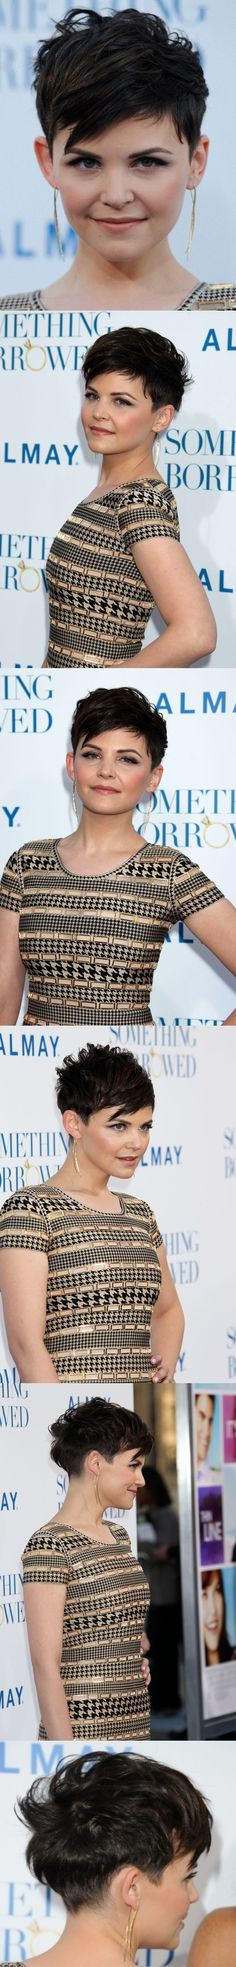 All views of Ginnifer Goodwin haircut                                                                                                                                                     More